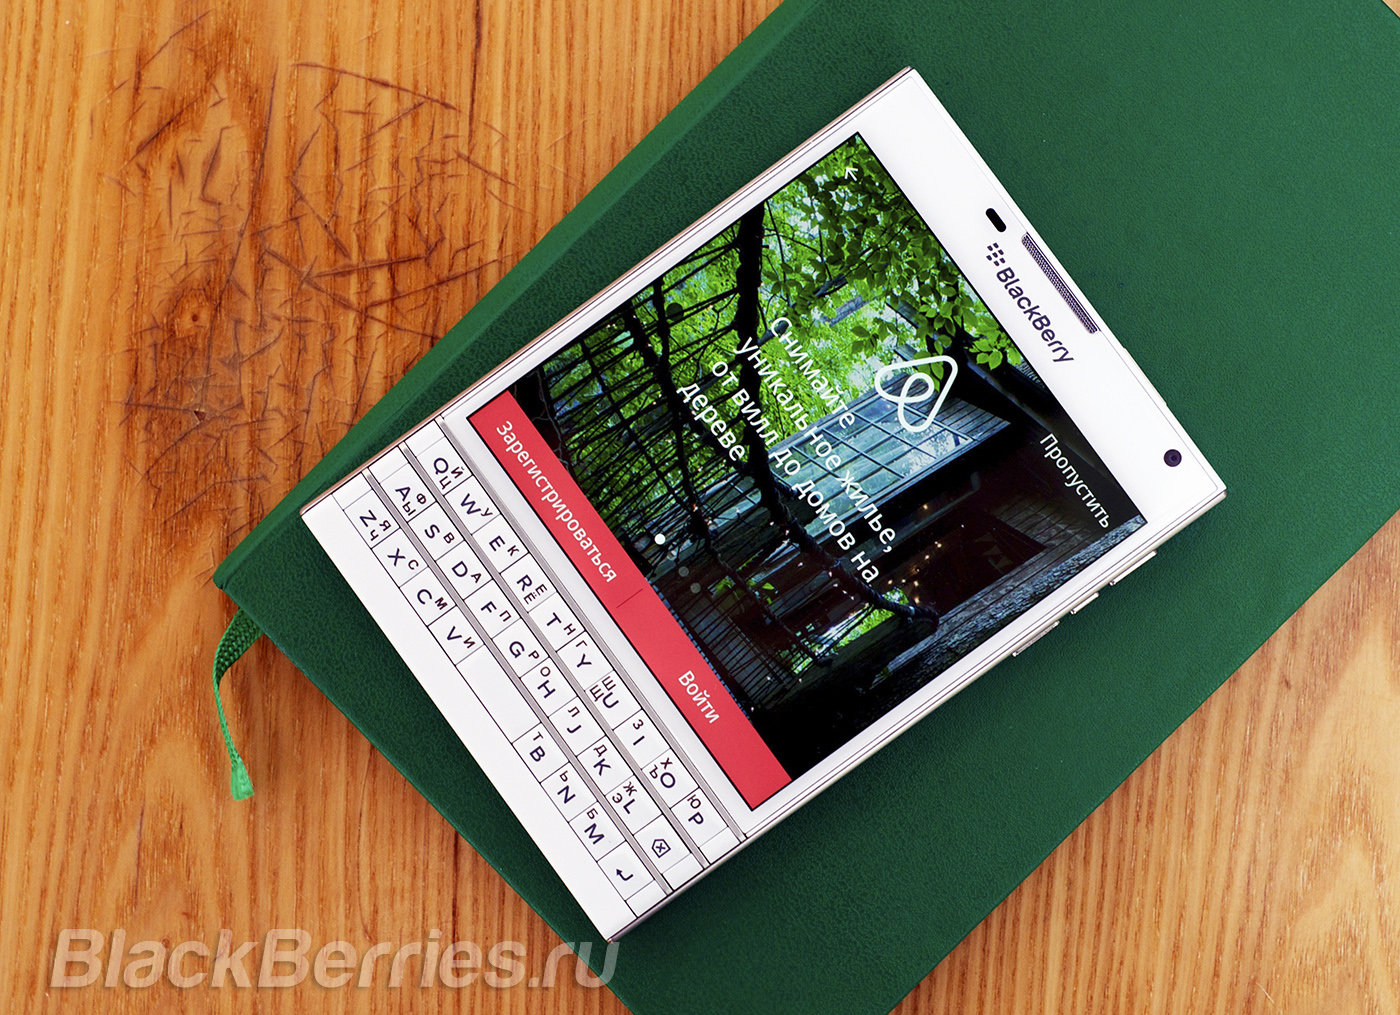 BlackBerry-Passport-App-23-05-10